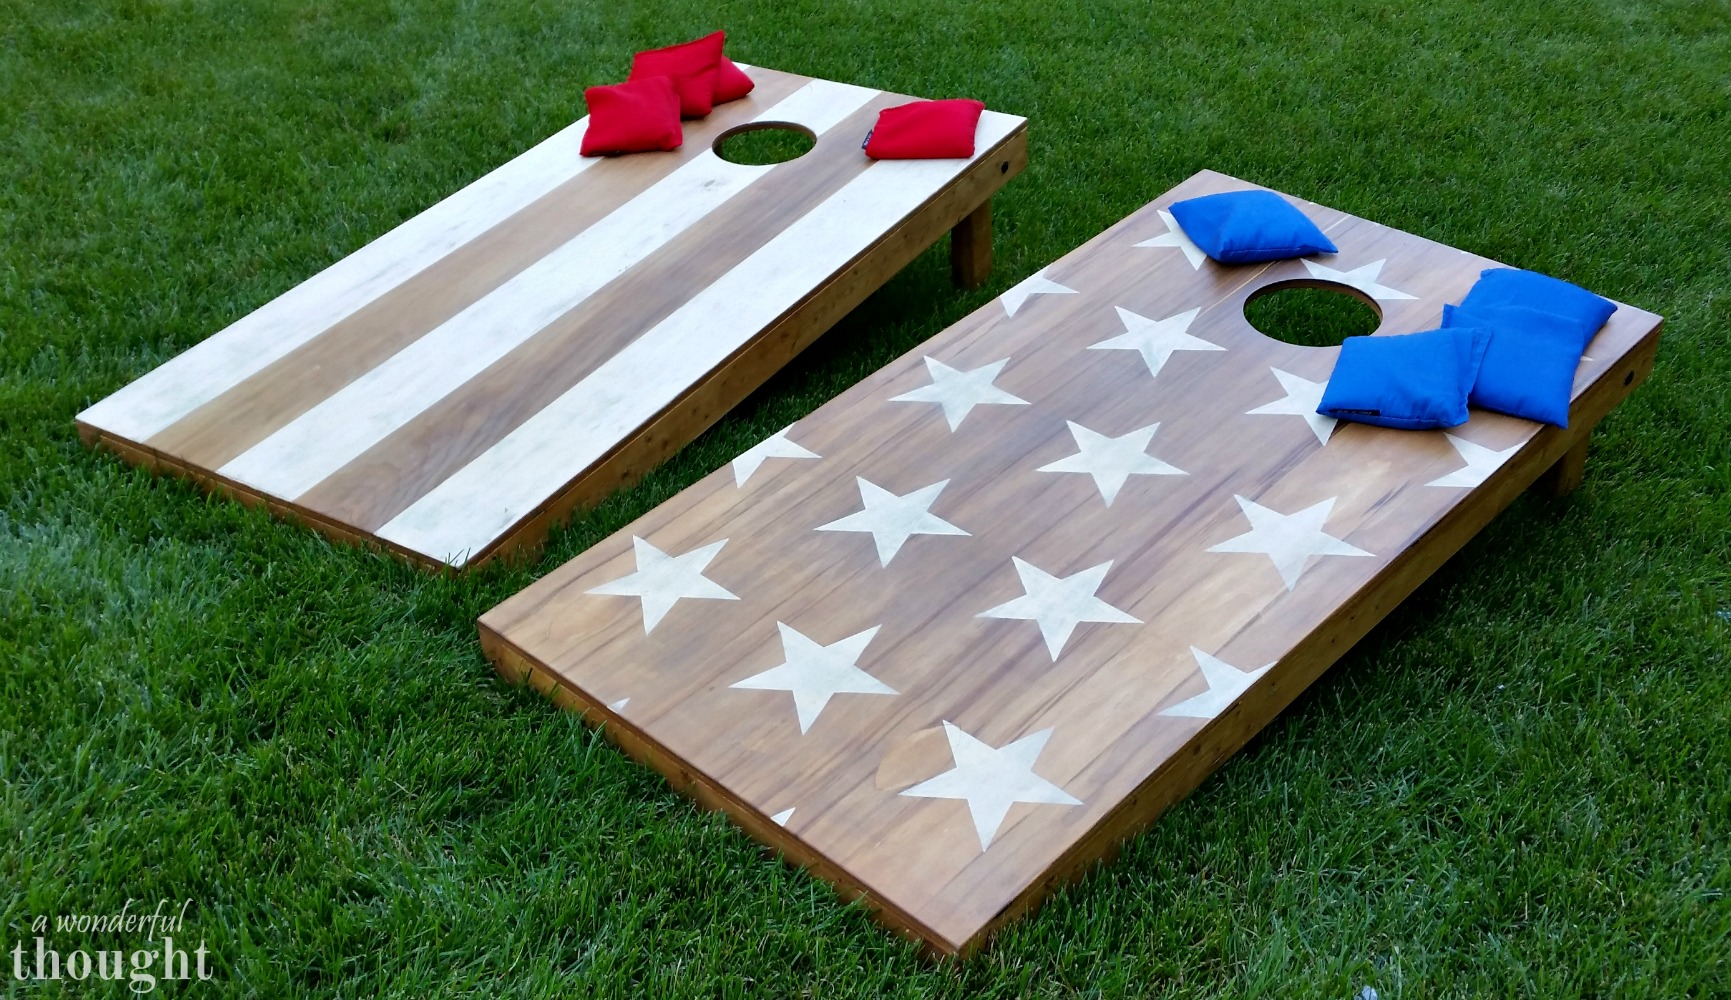 Diy Cornhole Boards A Wonderful Thought